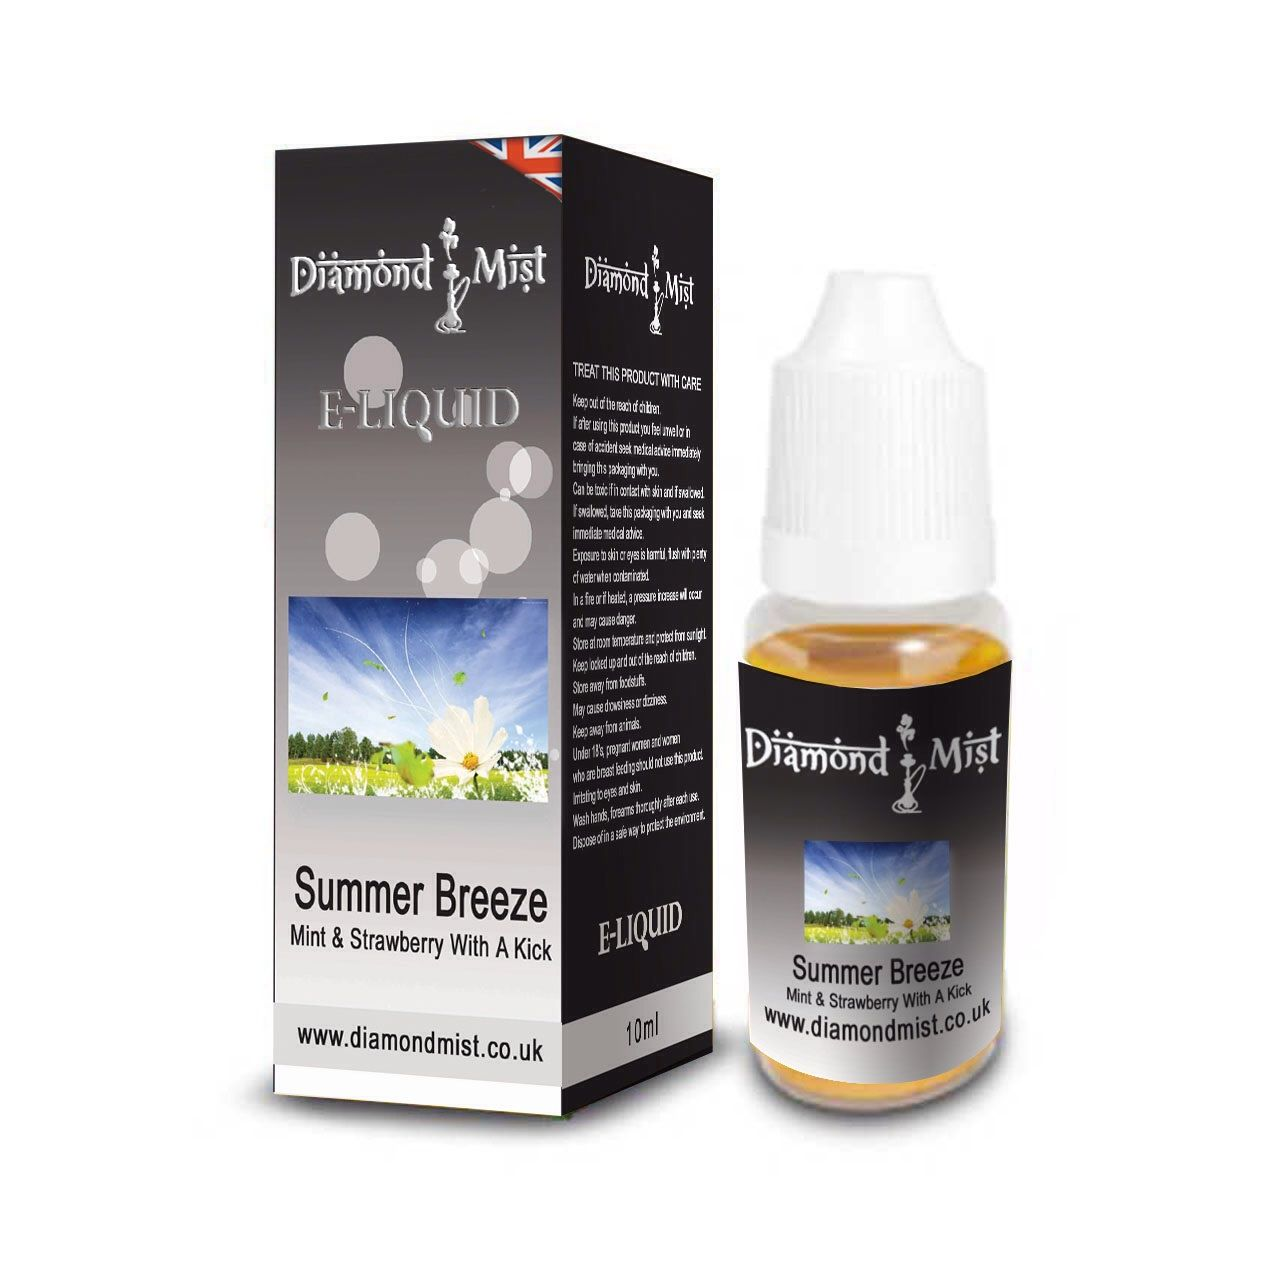 Summer Breeze Flavour E-Liquid from Diamond Mist. Nicotine strength: 0, 6, 12, 18 or 24 mg